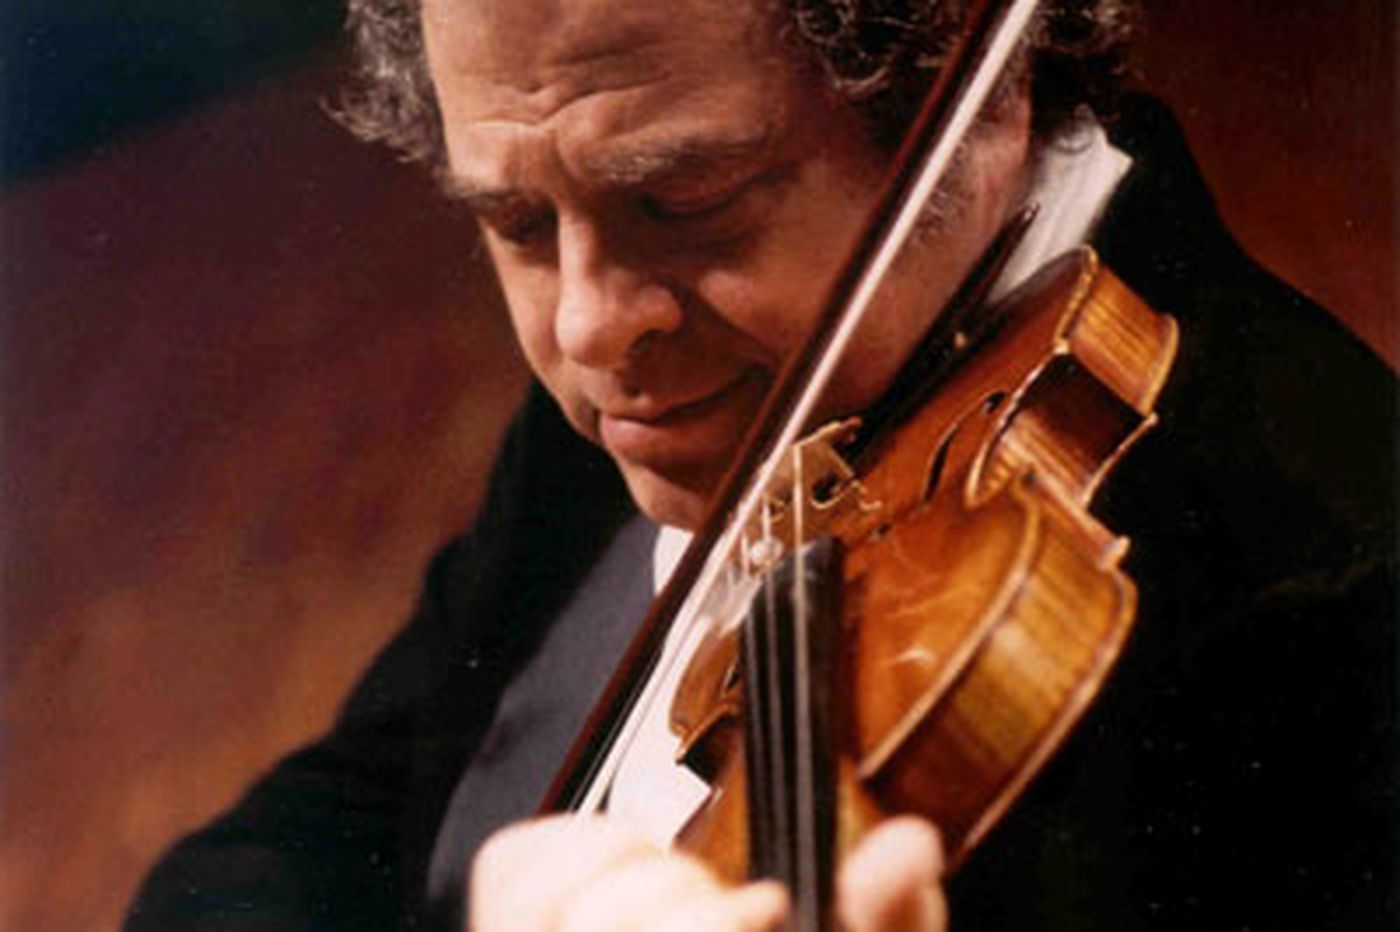 Half a fine evening with Itzhak Perlman